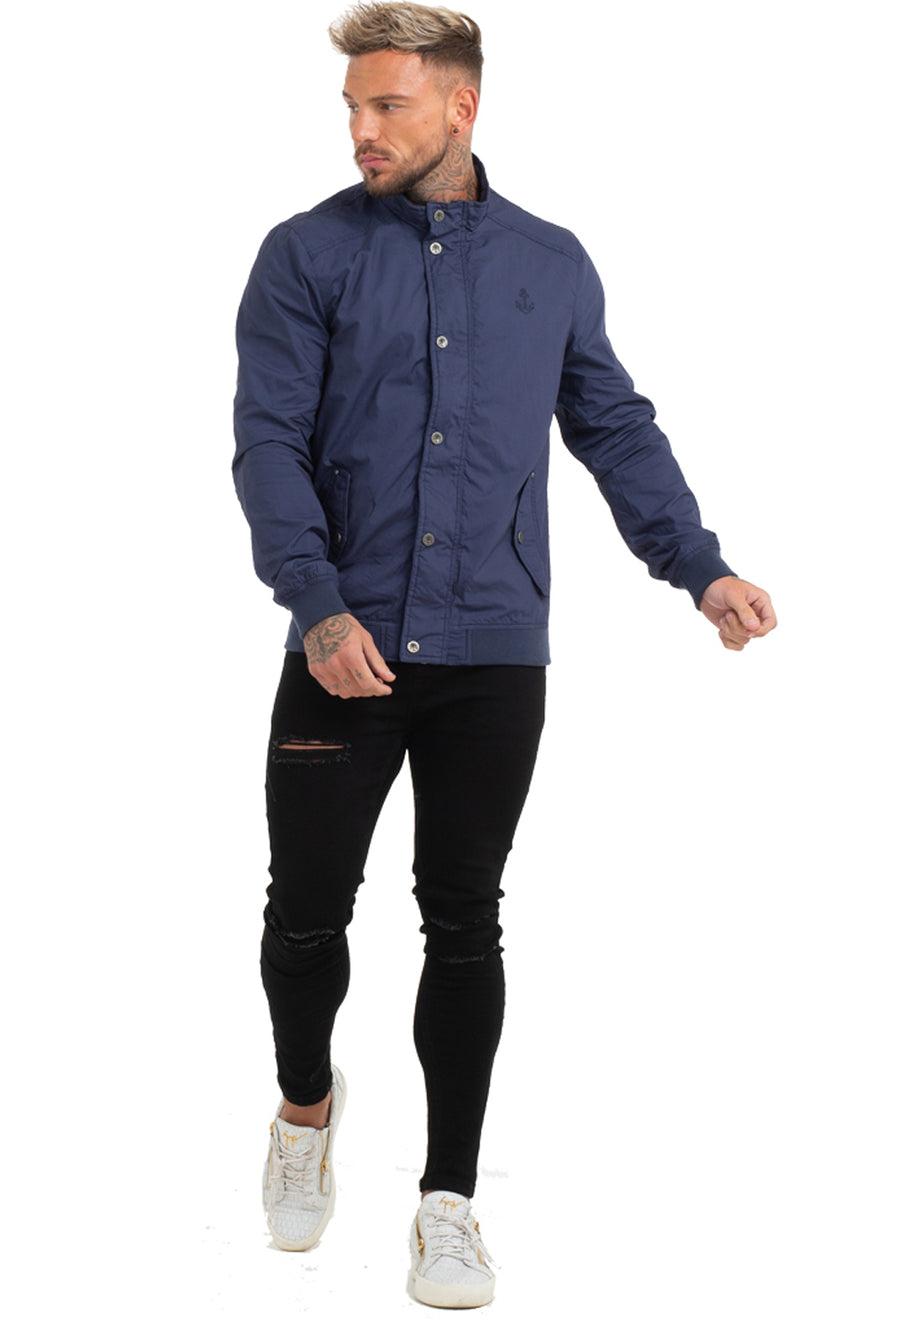 Men's Dark Blue Jacket